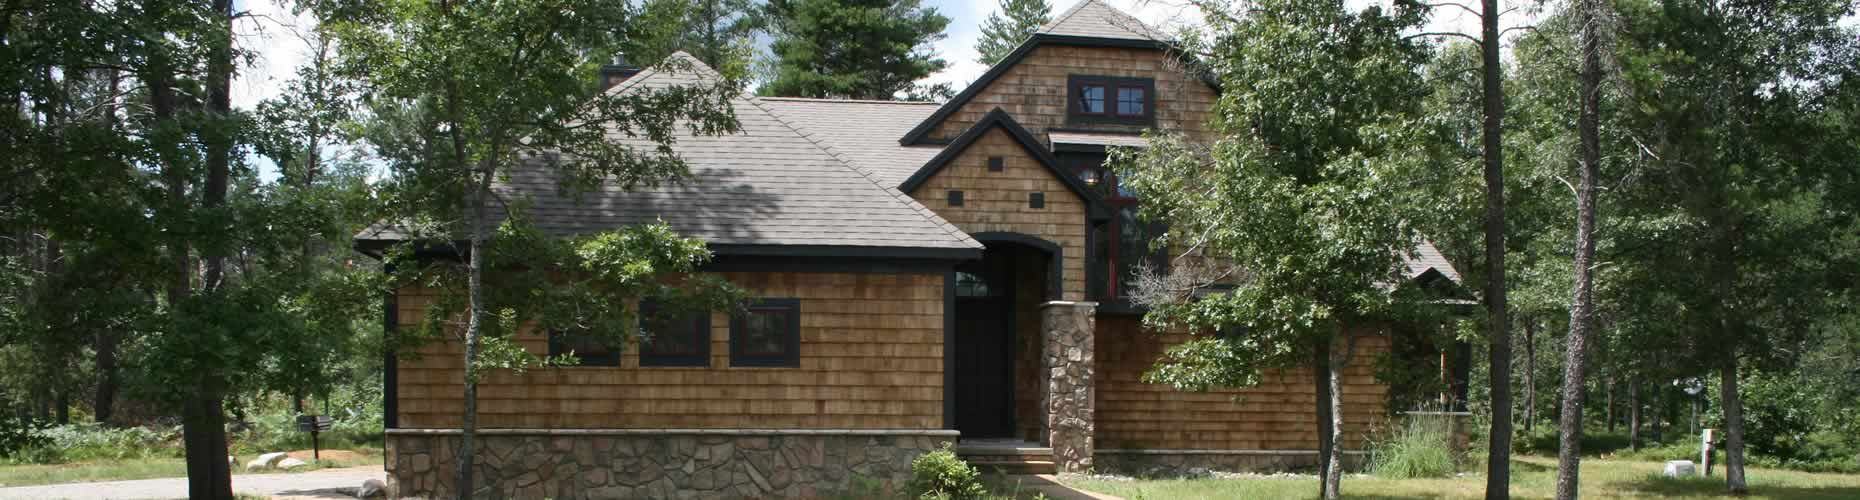 pines cottage header